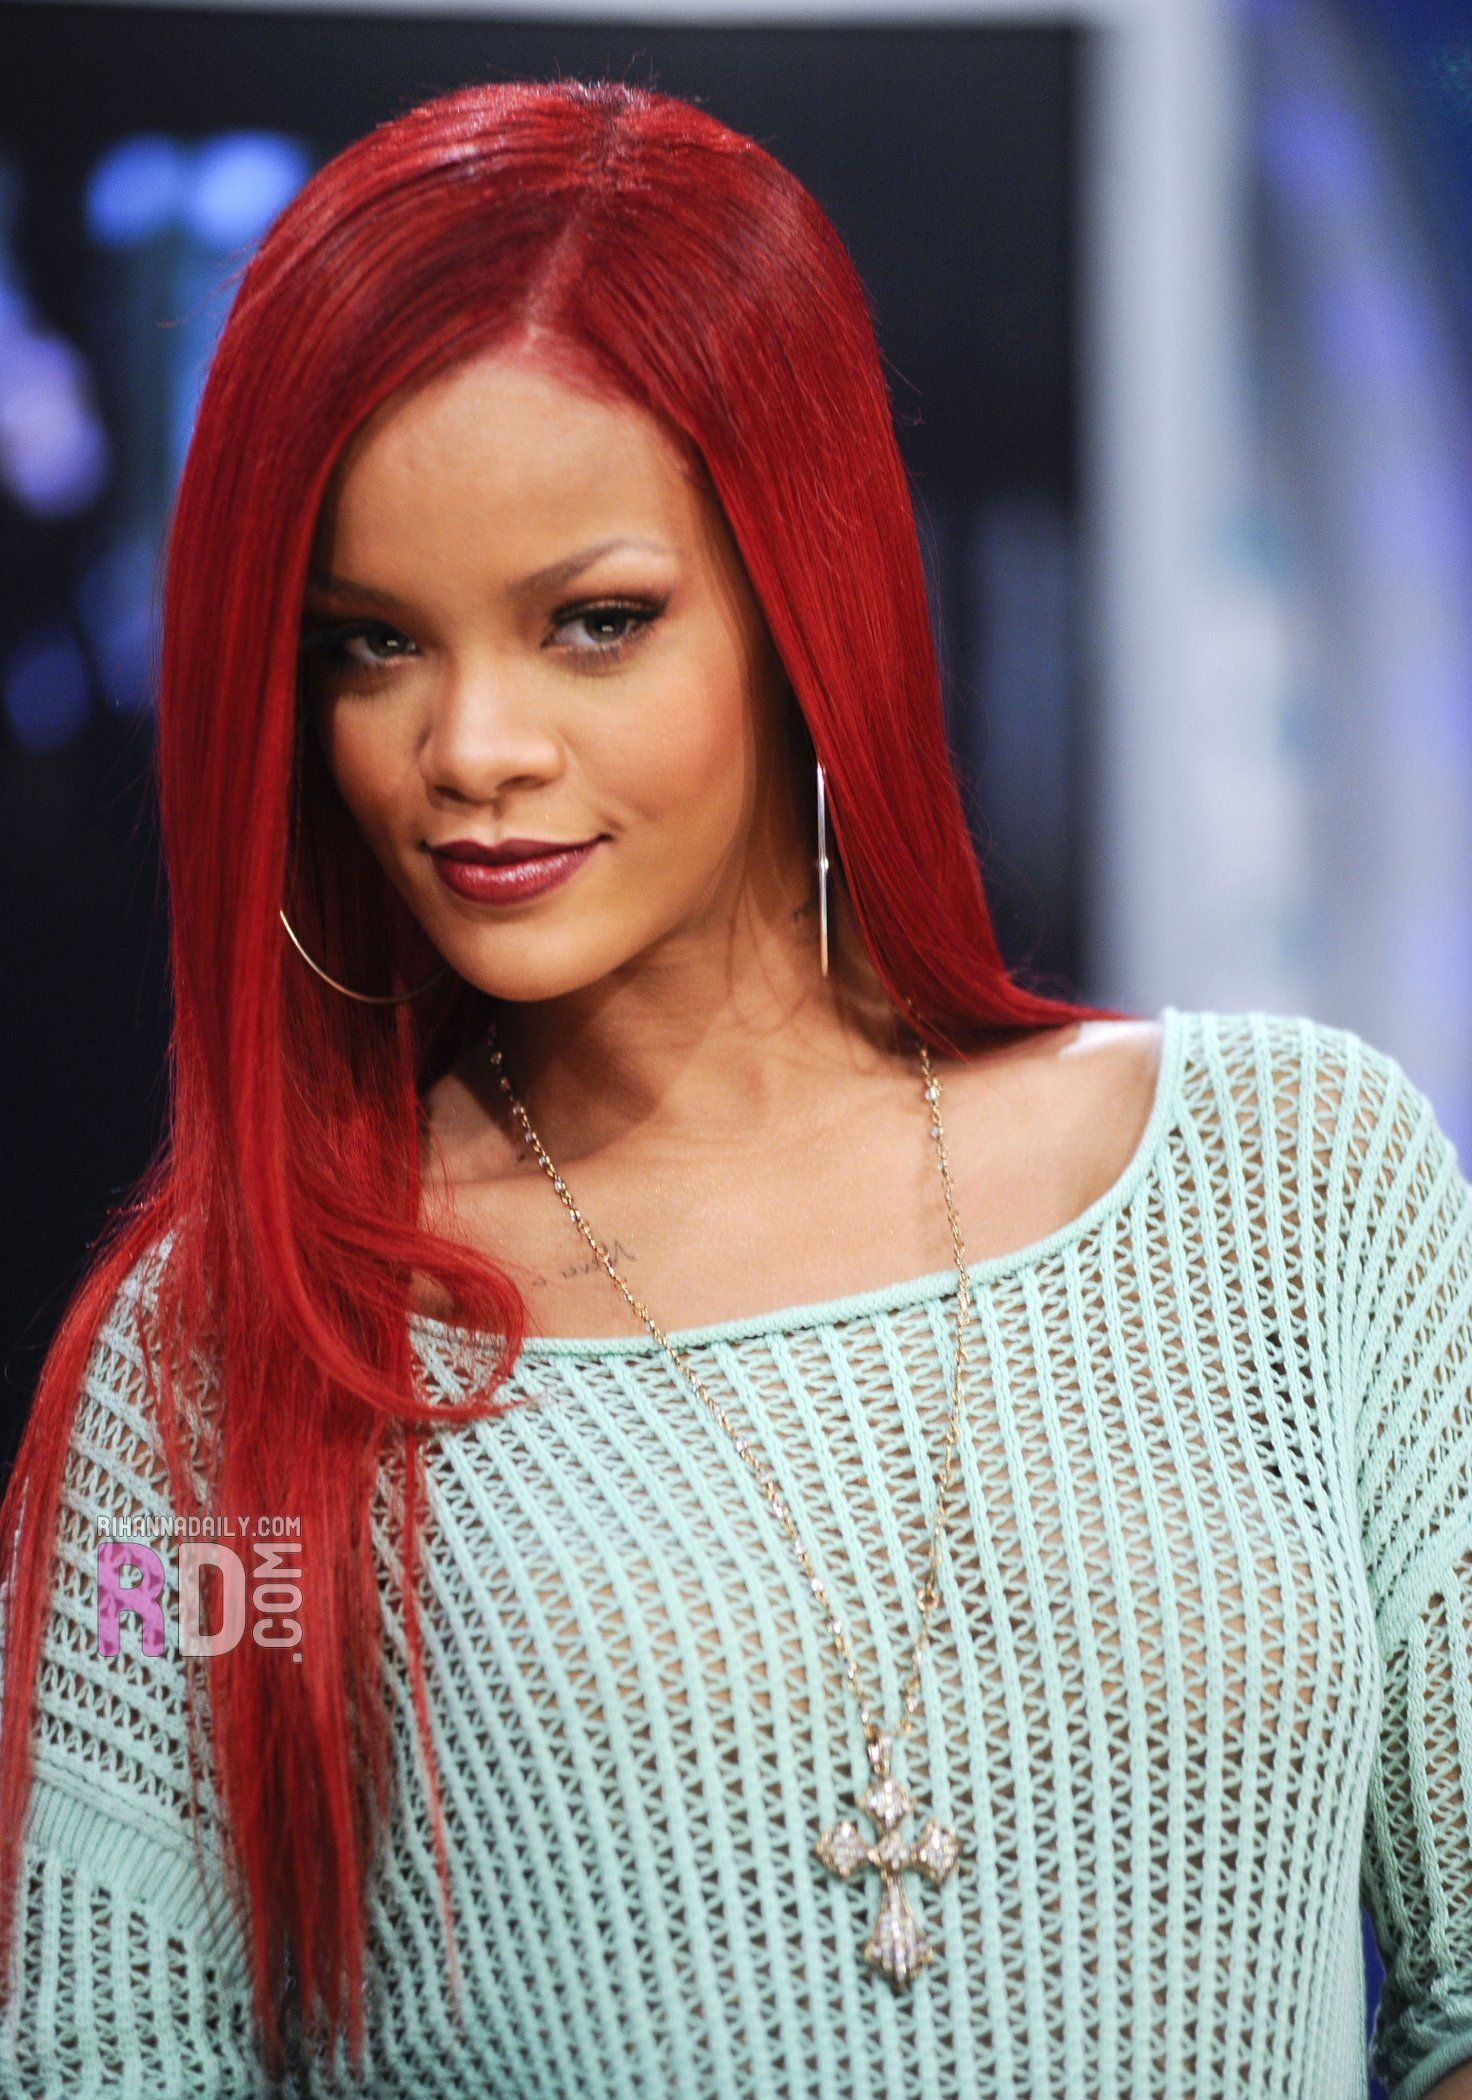 rihanna red hair hair. Black Bedroom Furniture Sets. Home Design Ideas